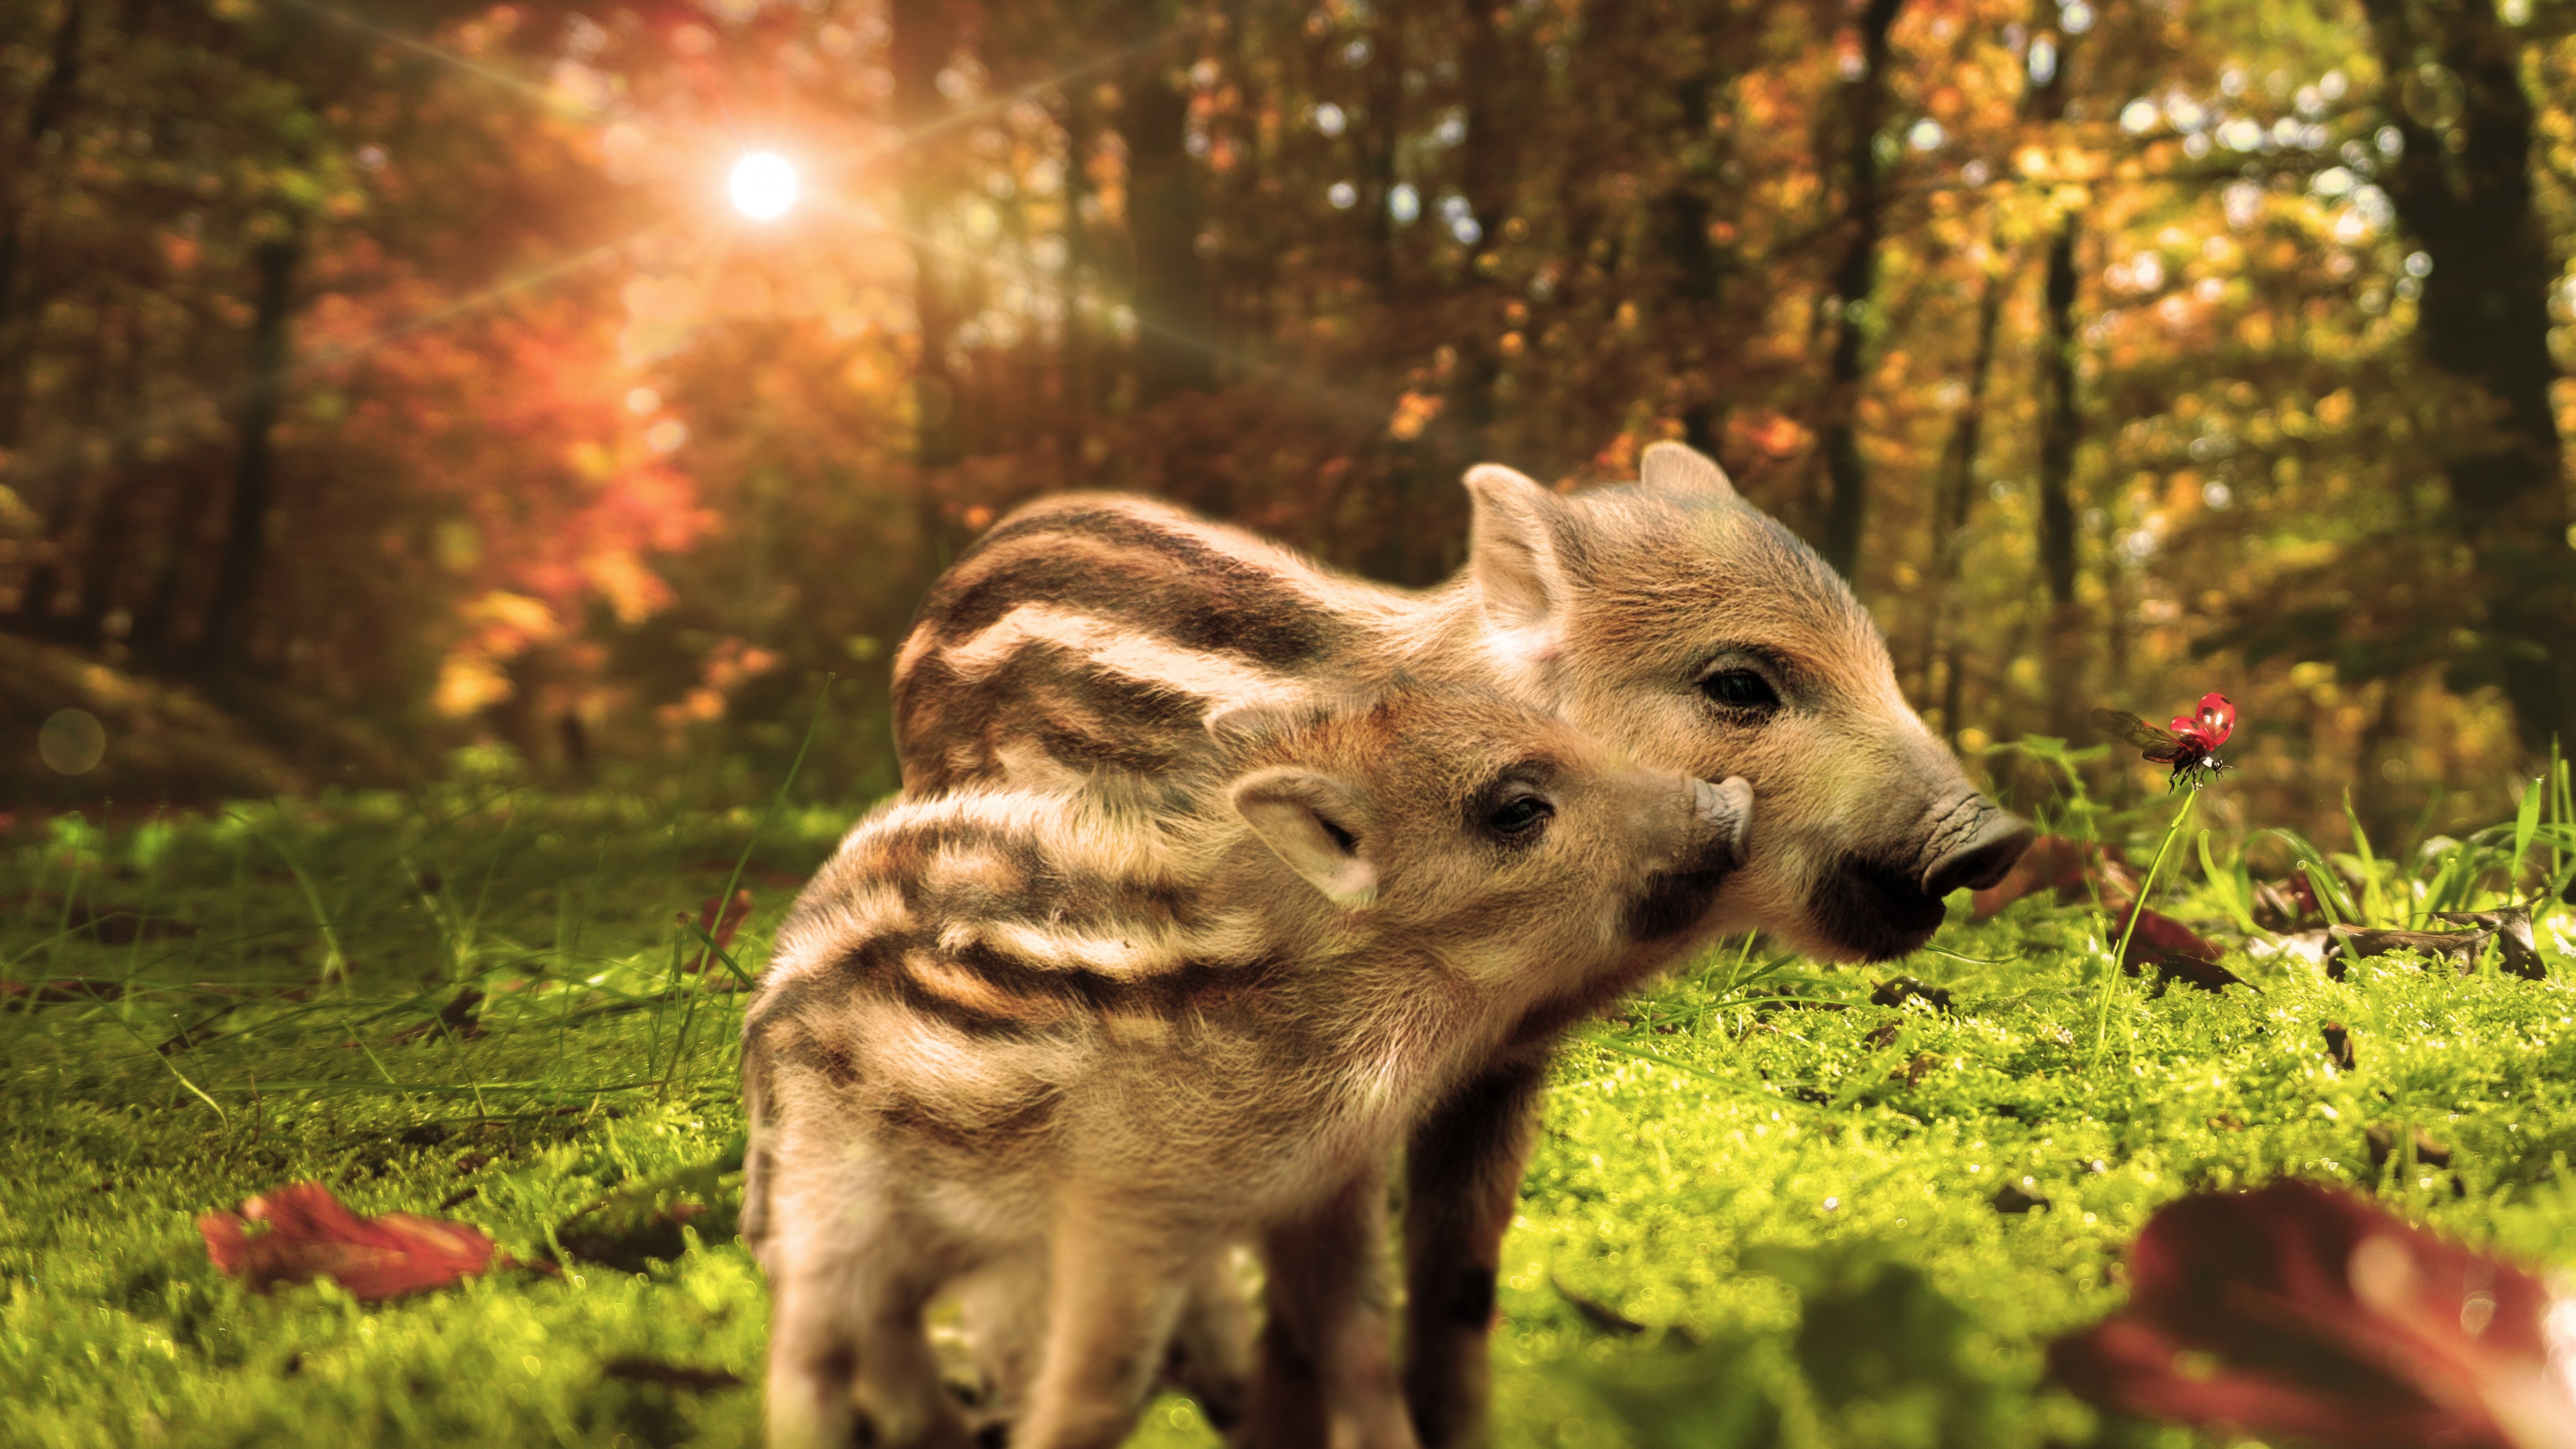 Wallpapers 2560x1440 Cars Wallpaper Pig Funny Animals 7k Animals 18889